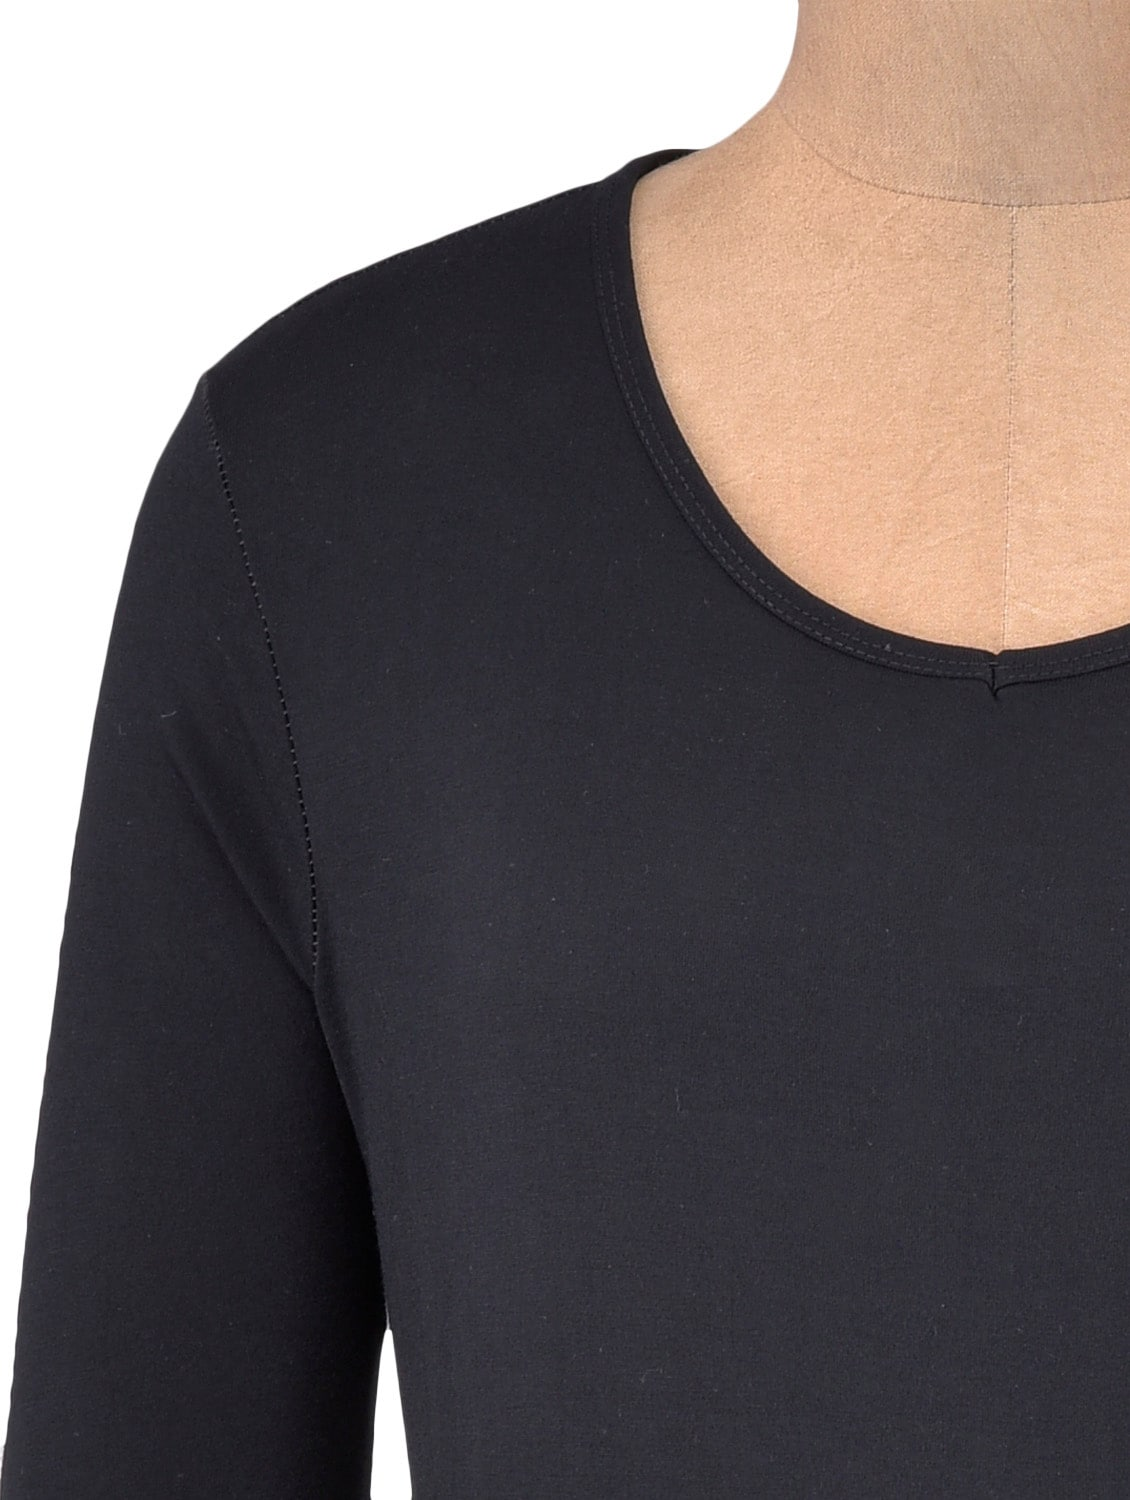 726aea7b Buy Black Viscose Plain Top for Women from Vvoguish for ₹425 at 39 ...